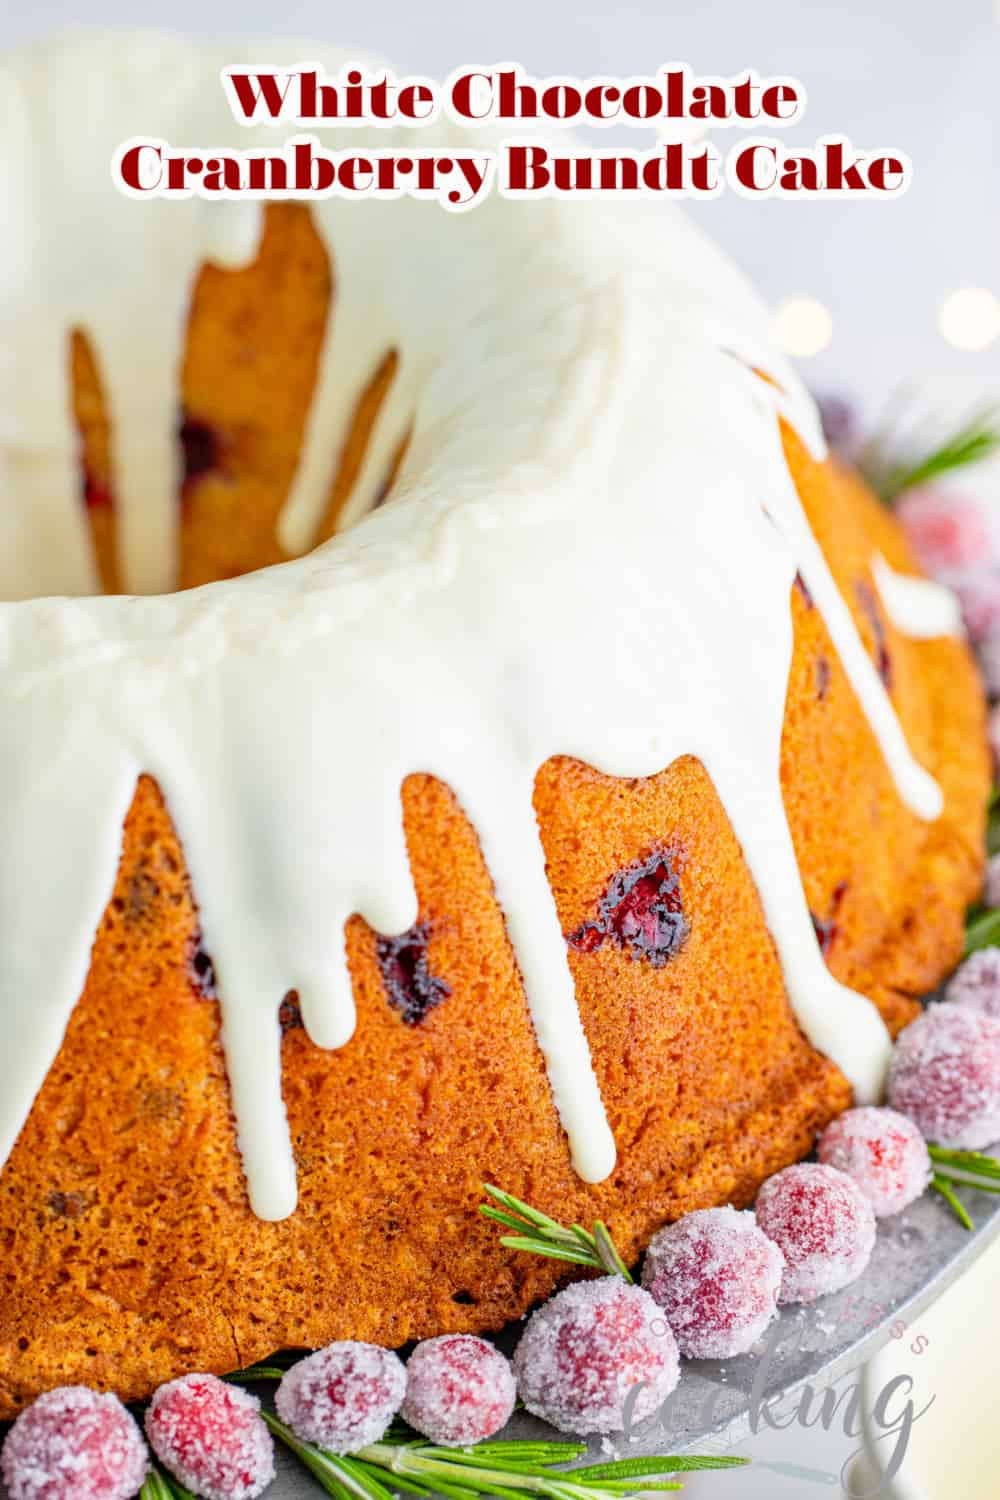 With its snowy glaze and a glistening garnish of sugared berries, this White Chocolate Cranberry Bundt Cake will be a showstopper on your holiday dessert table. Perfect for Thanksgiving, Christmas, or New Years', this gorgeous cake is a must-make for festive celebrations. via @Mooreorlesscook